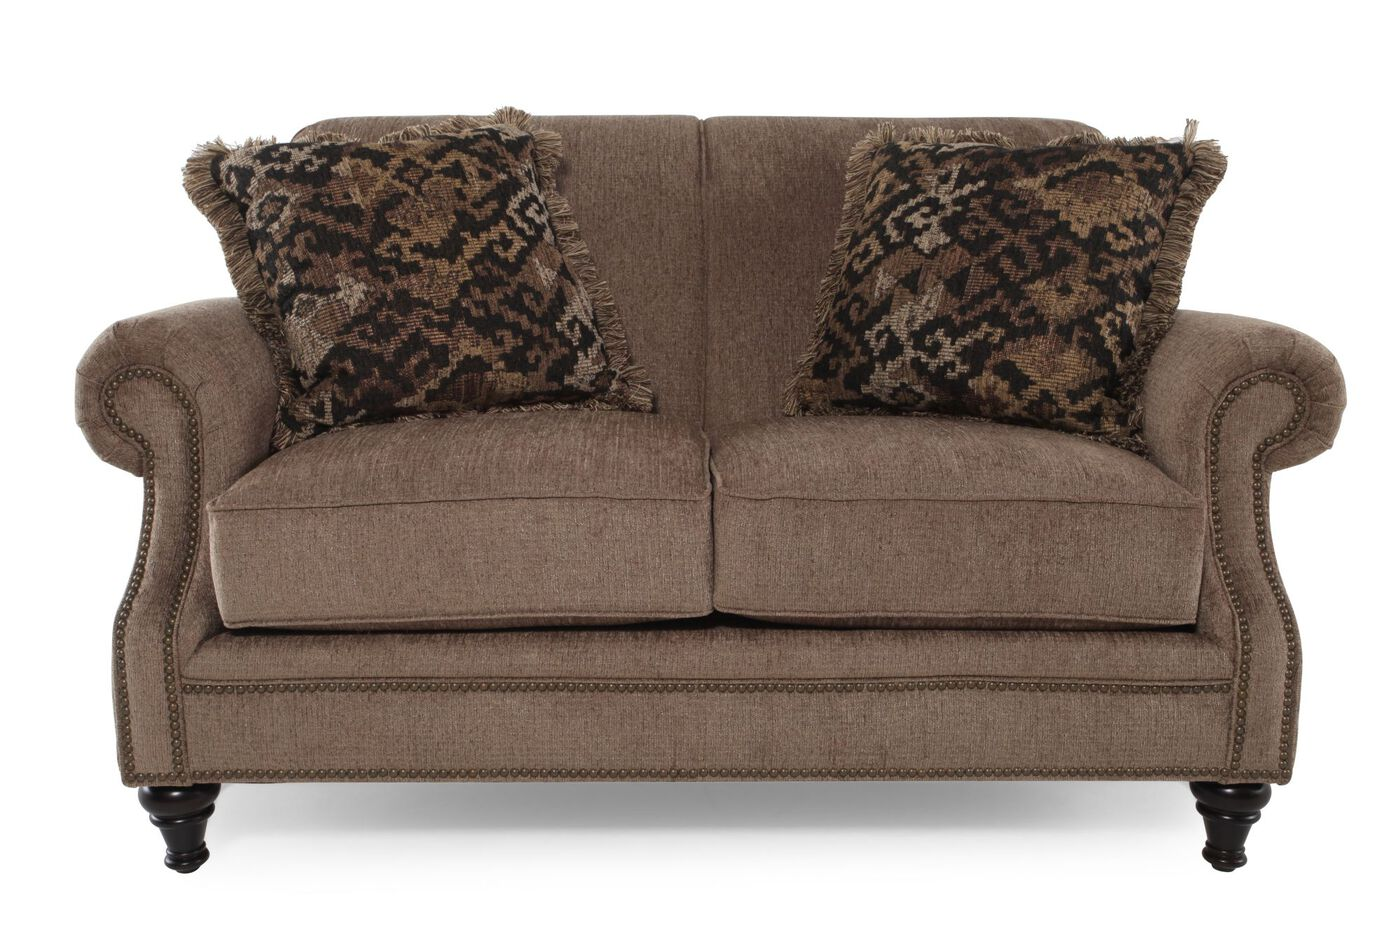 Nailhead Trimmed Contemporary Loveseat In Latte Mathis Brothers Furniture